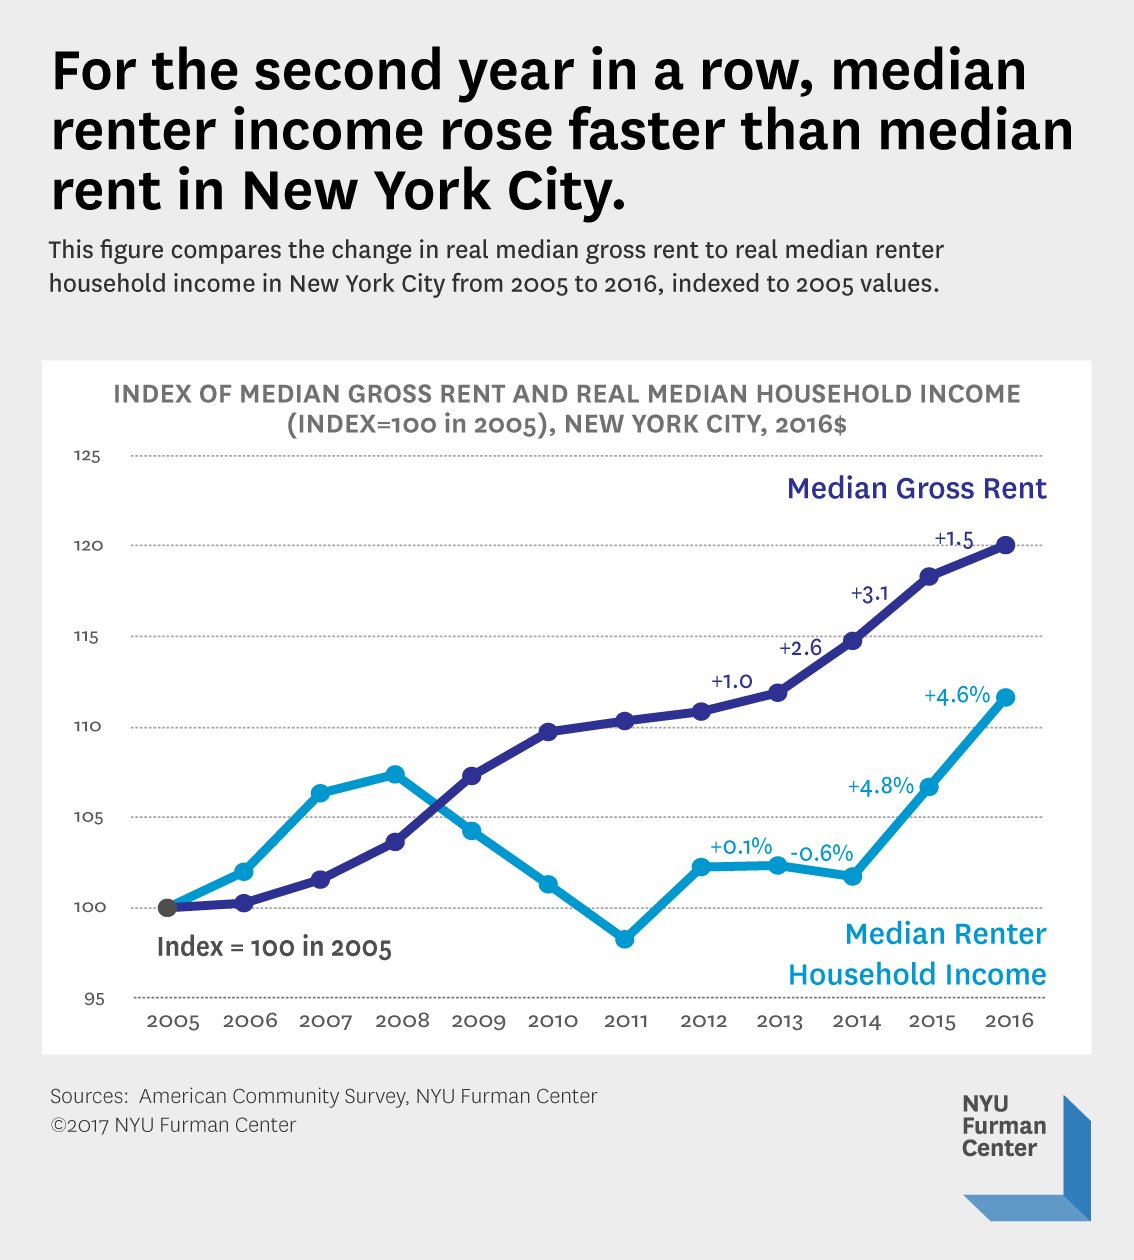 New York City Median Renter Income Continued Its Upward